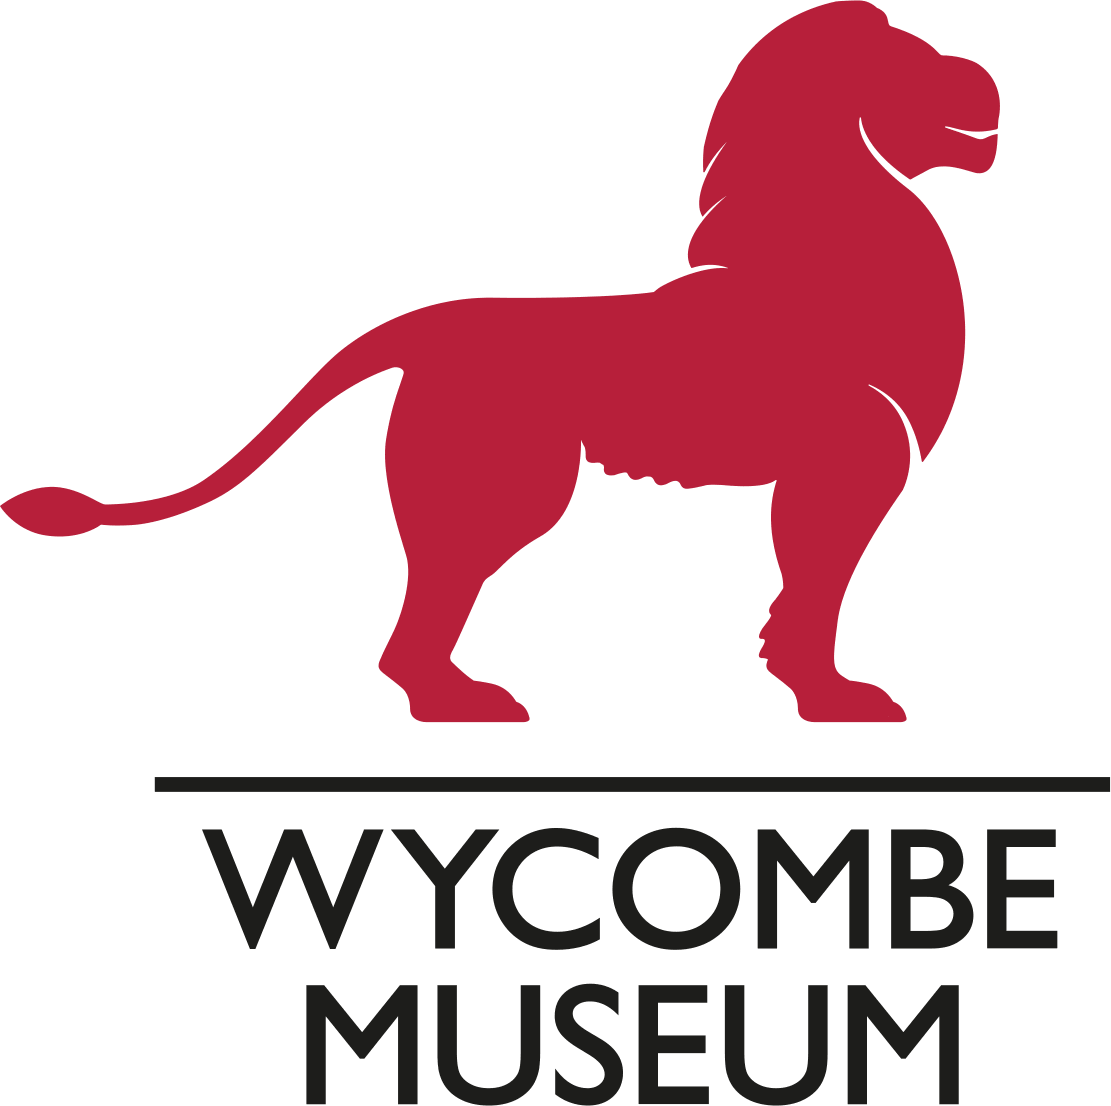 Wycombe Museum Official Site